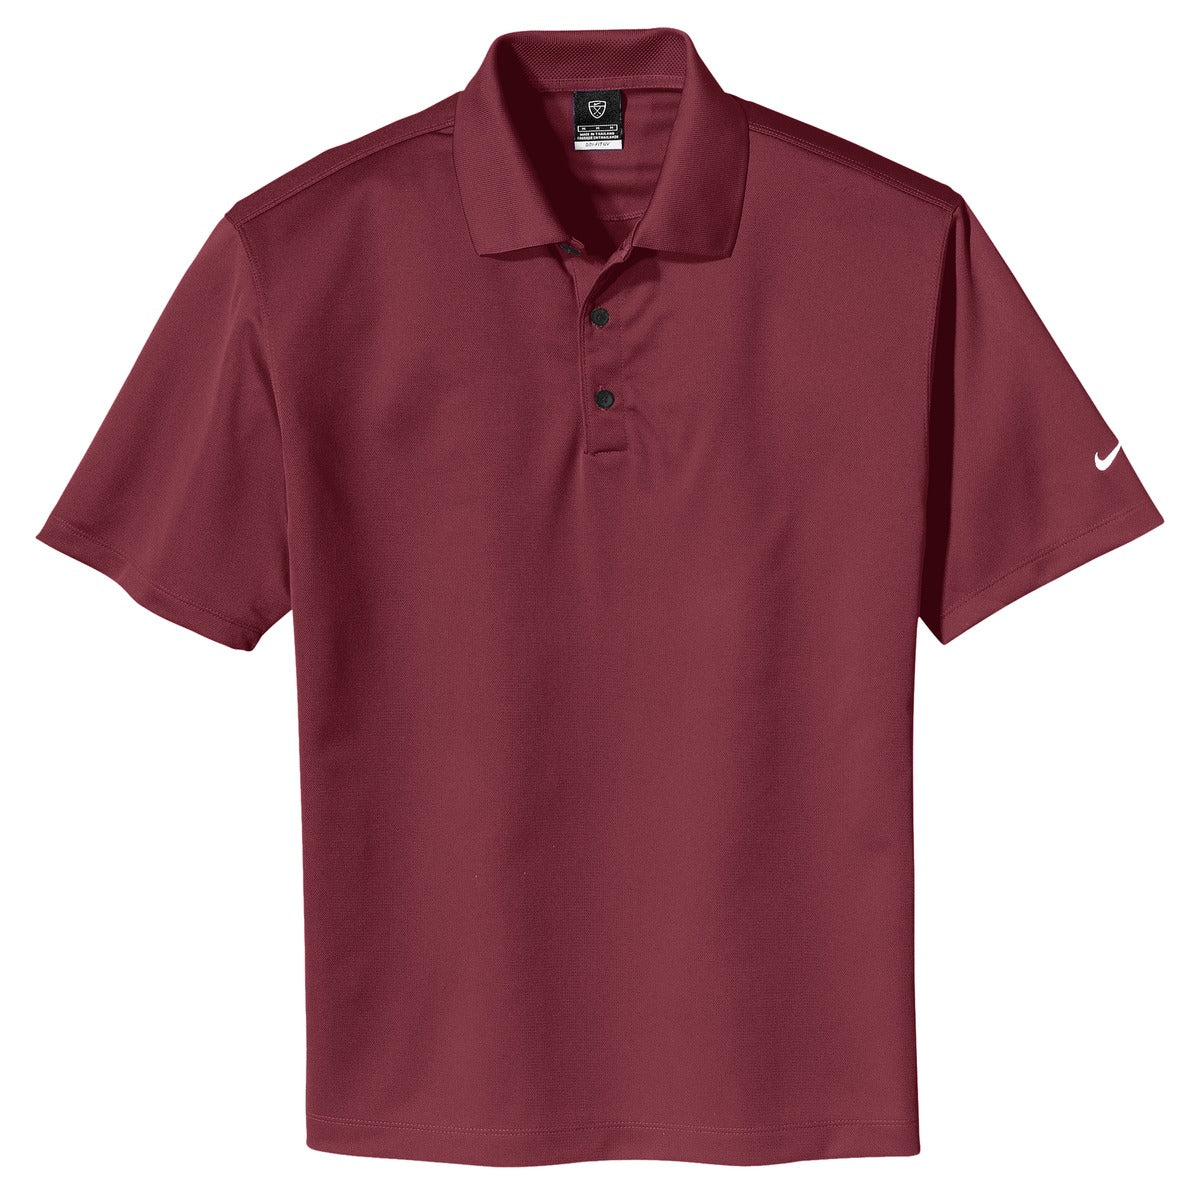 Team Red Nike Tech Basic Dri-FIT Polo.